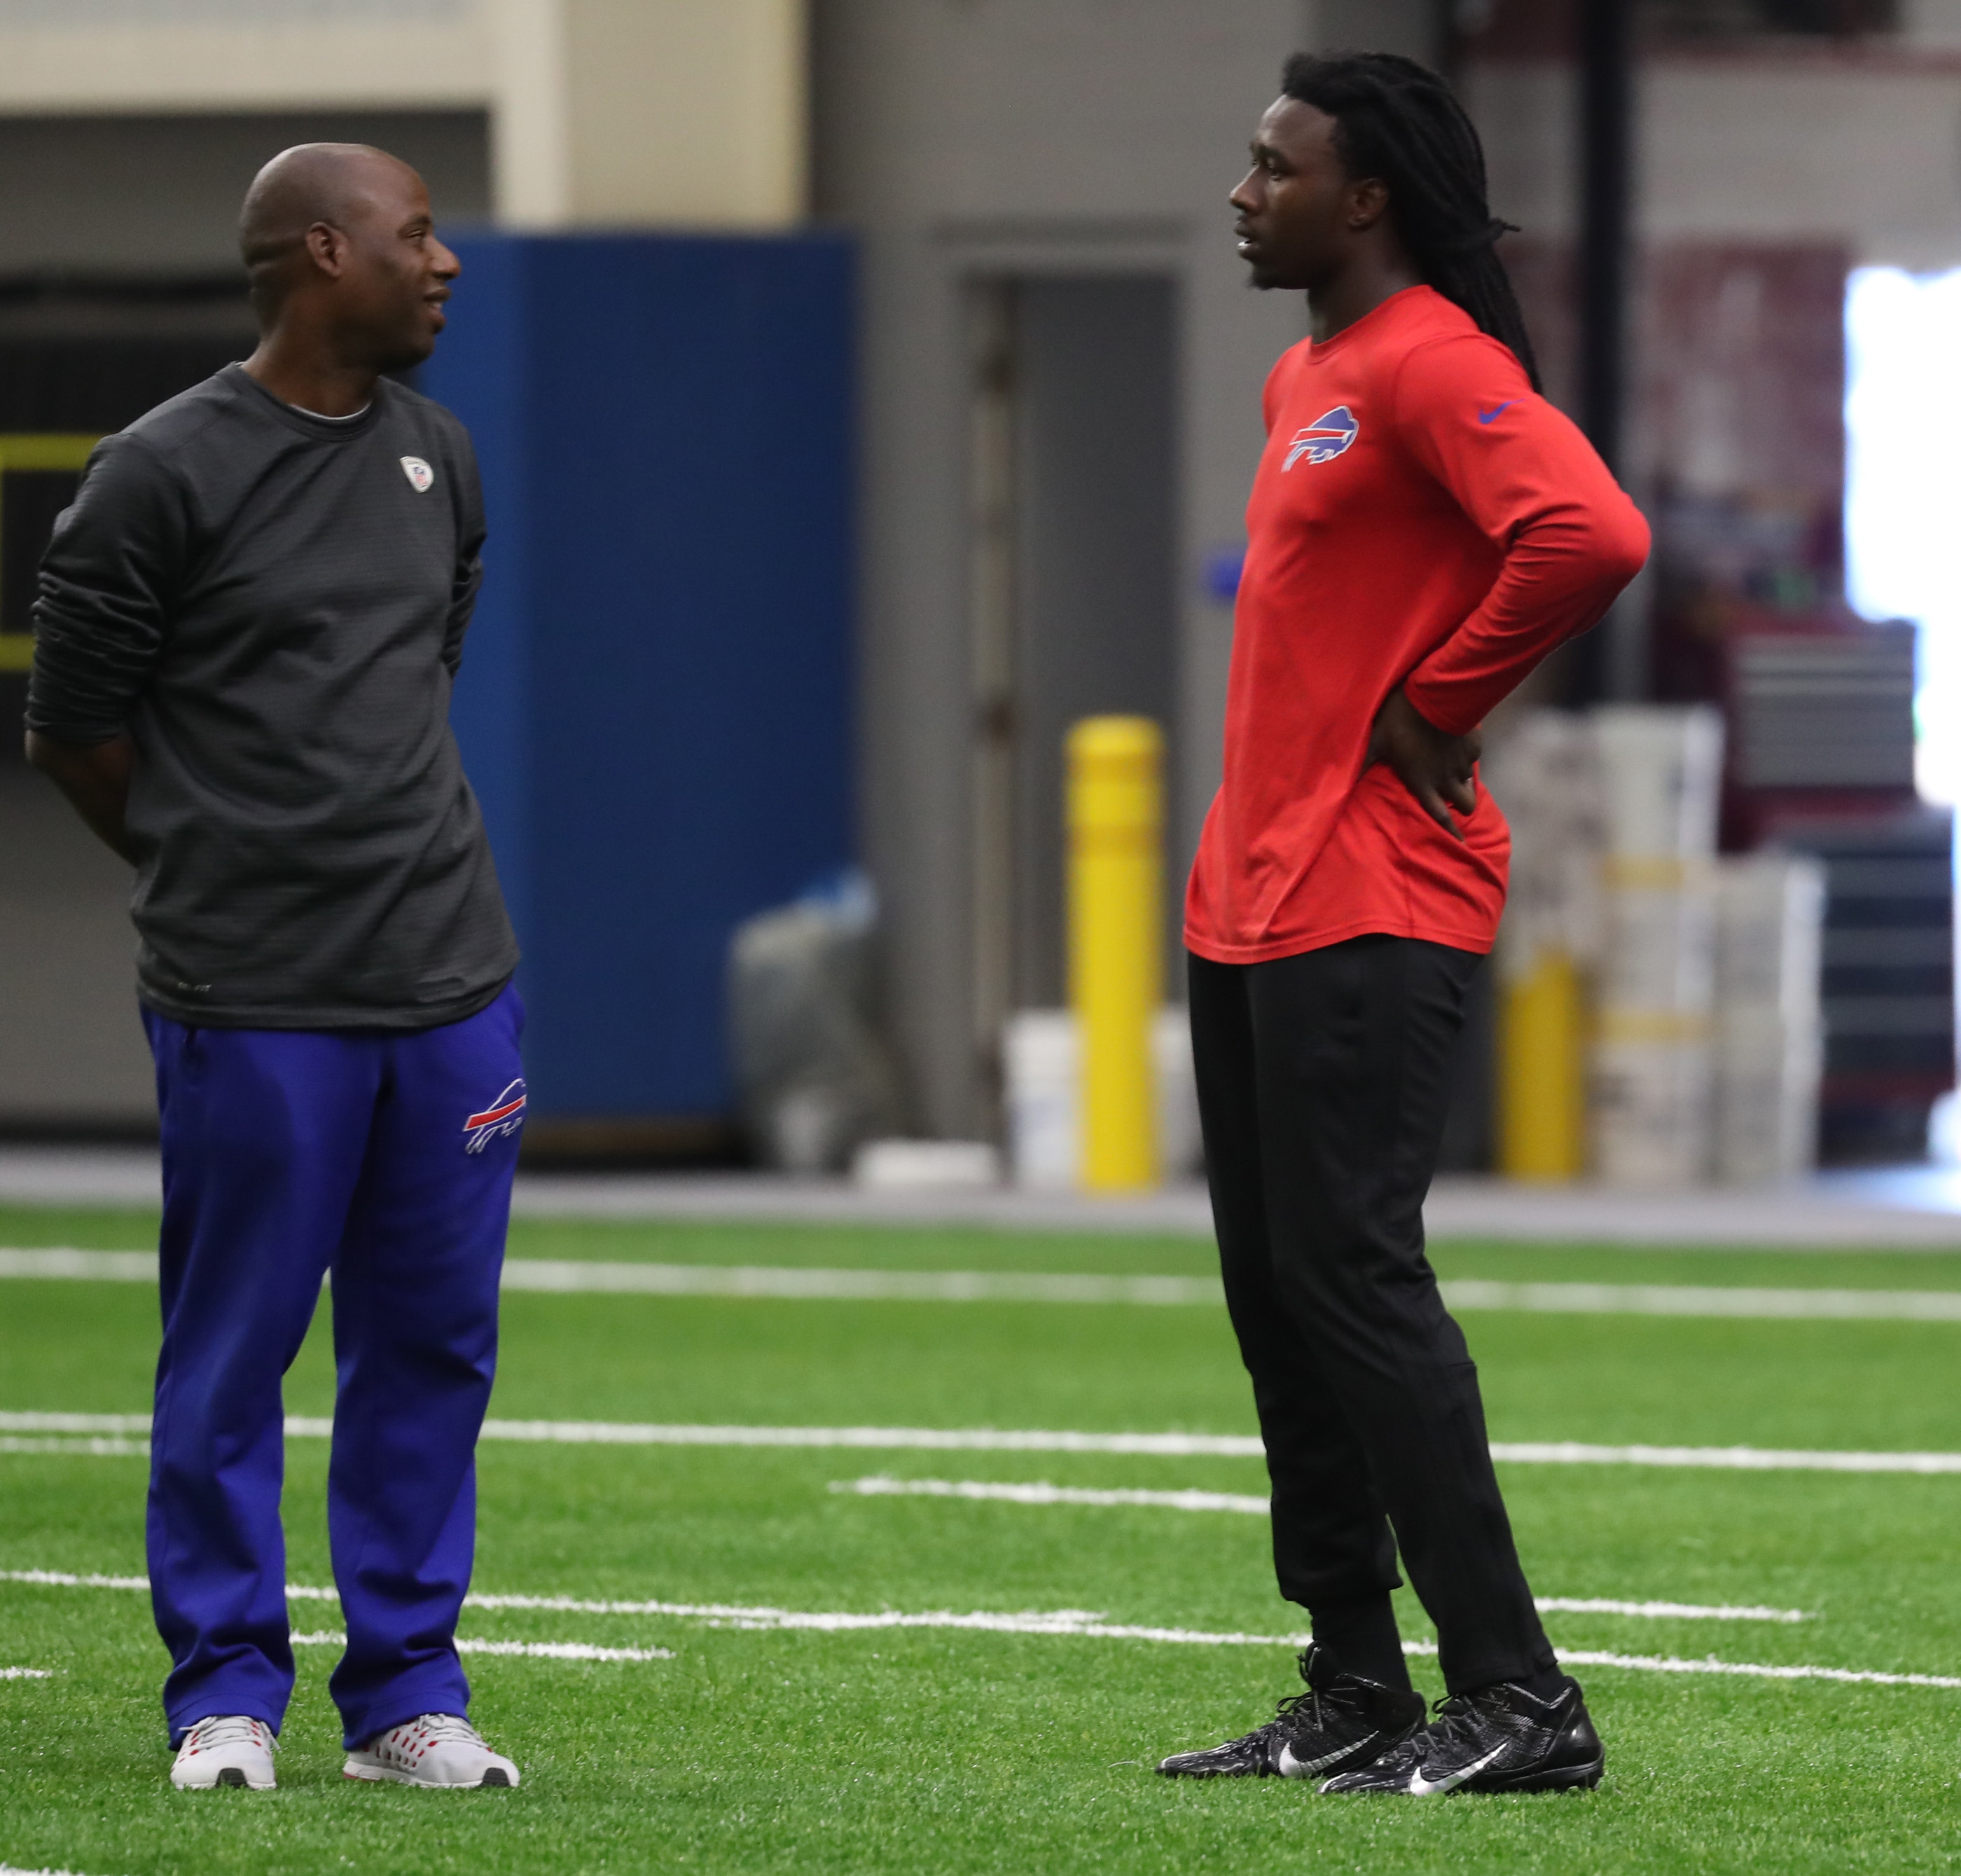 Buffalo Bills wide receiver Sammy Watkins, working with a member of the team's training staff, did not practice Tuesday.